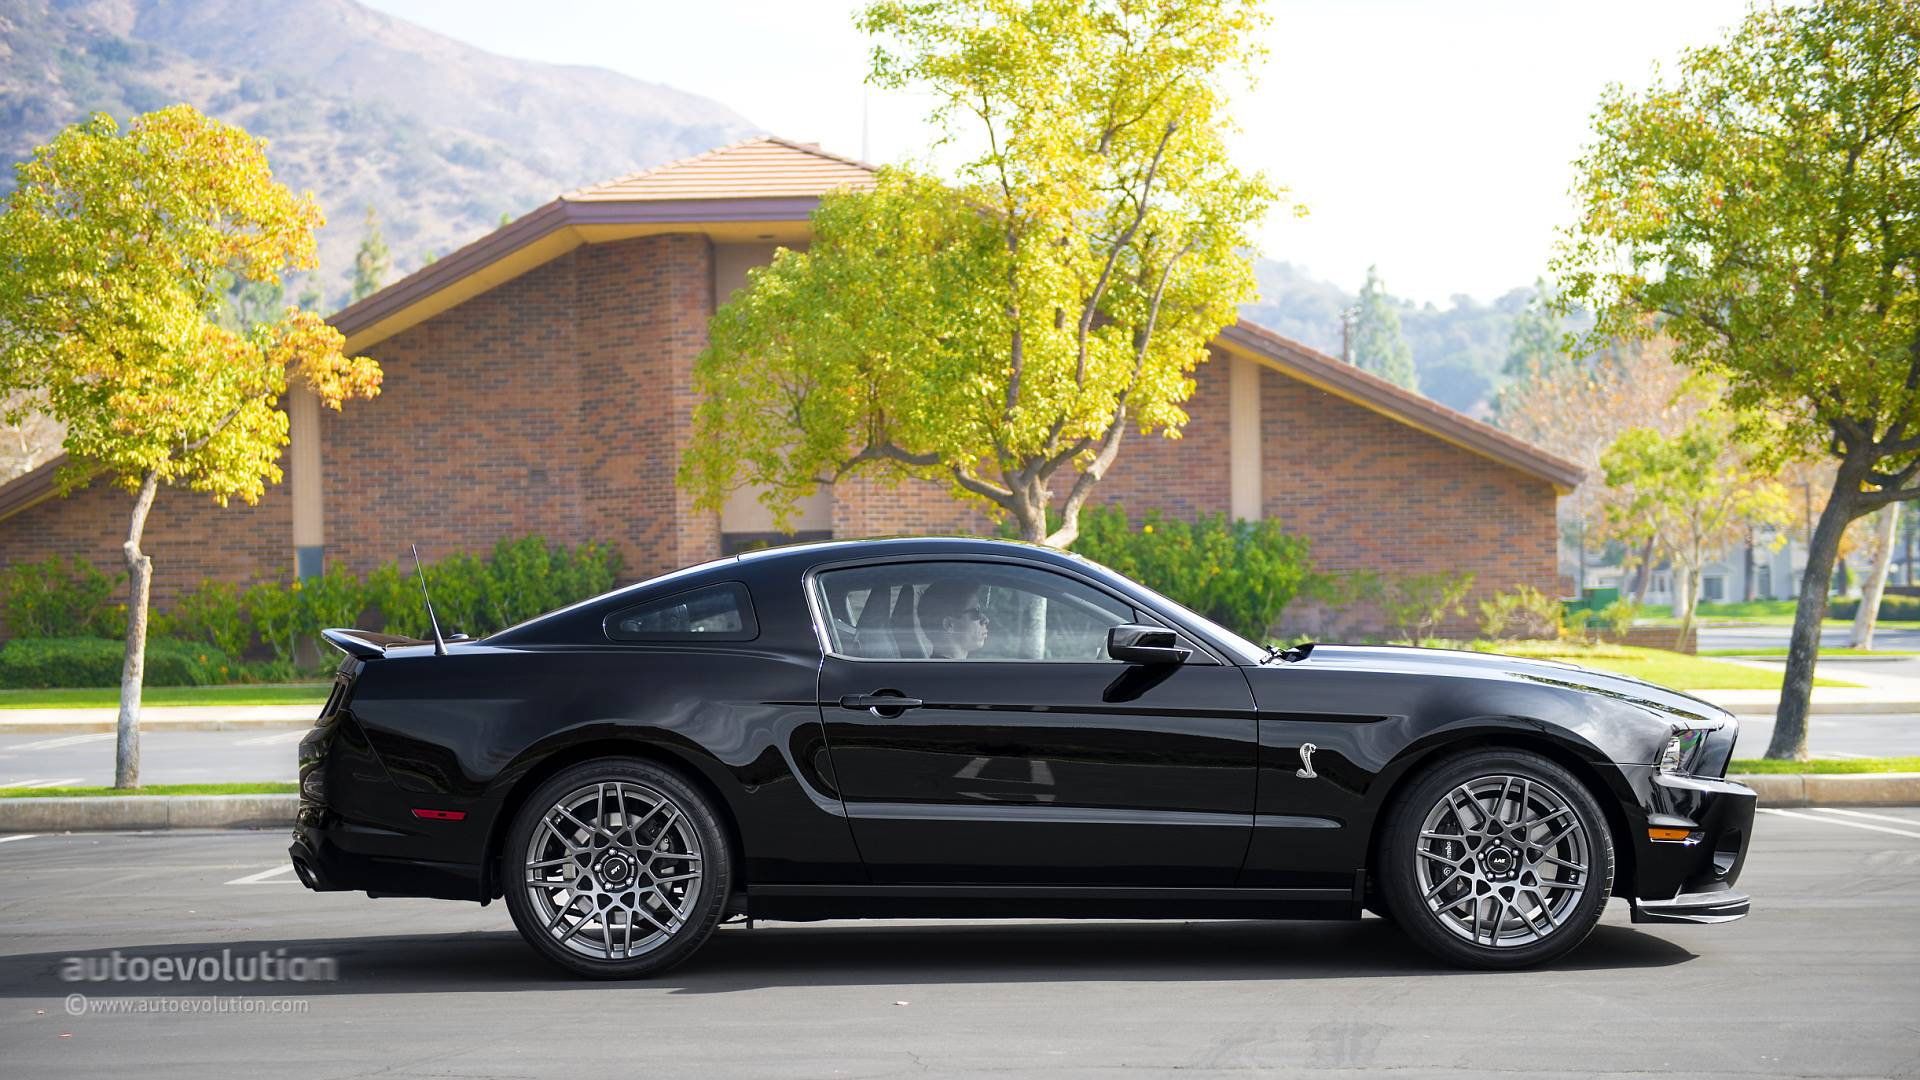 2014 Ford Mustang GT Premium - Coupe 5.0L V8 Manual